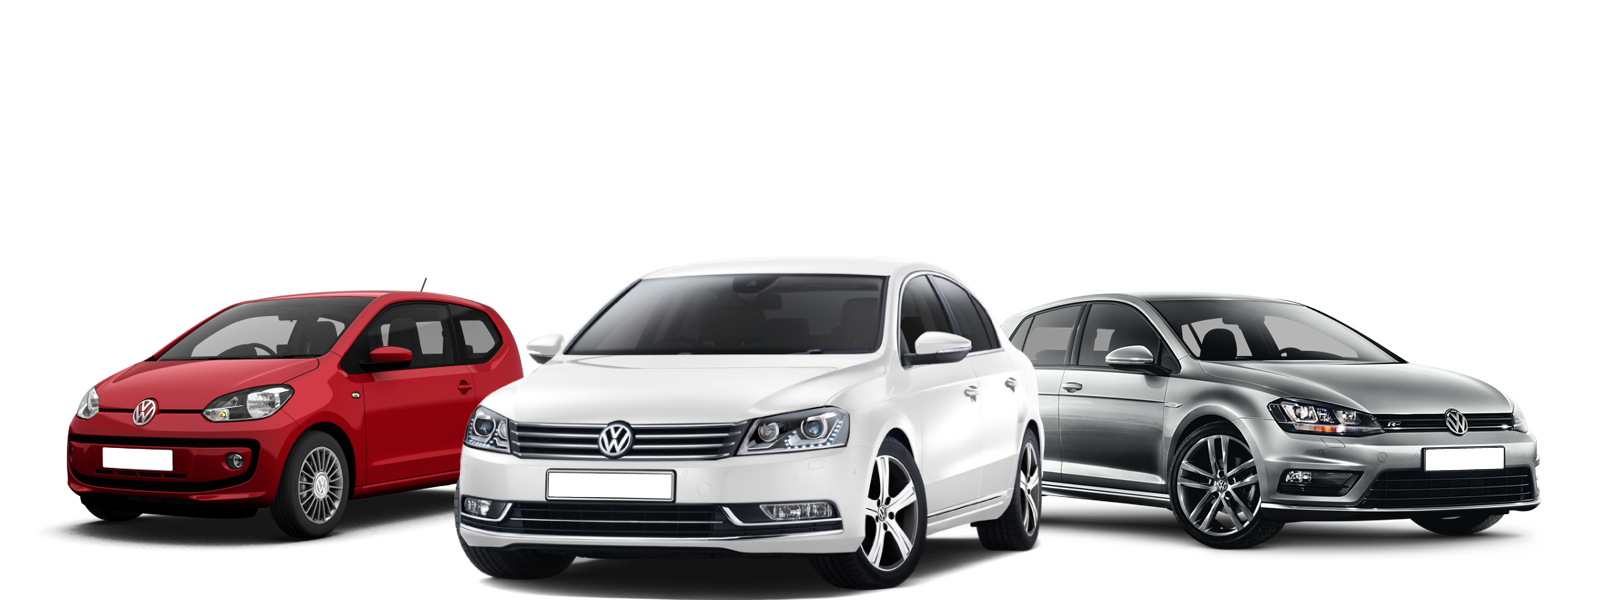 What Are The Best Self Driving Car Rentals In Bangalore Quora